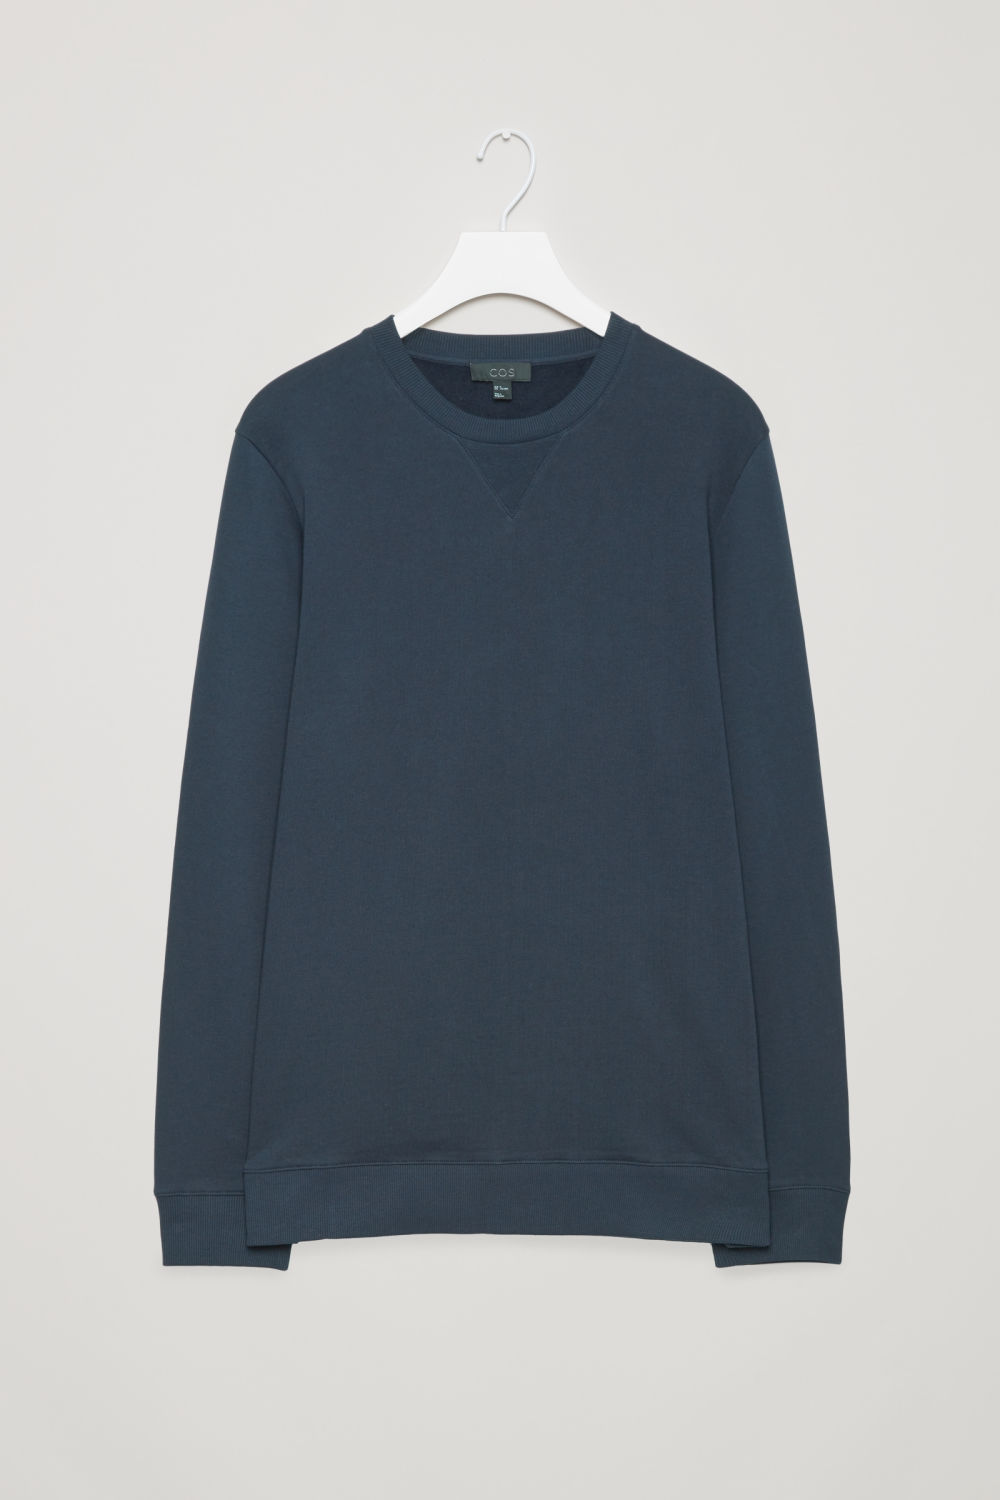 FLEECED SWEATSHIRT